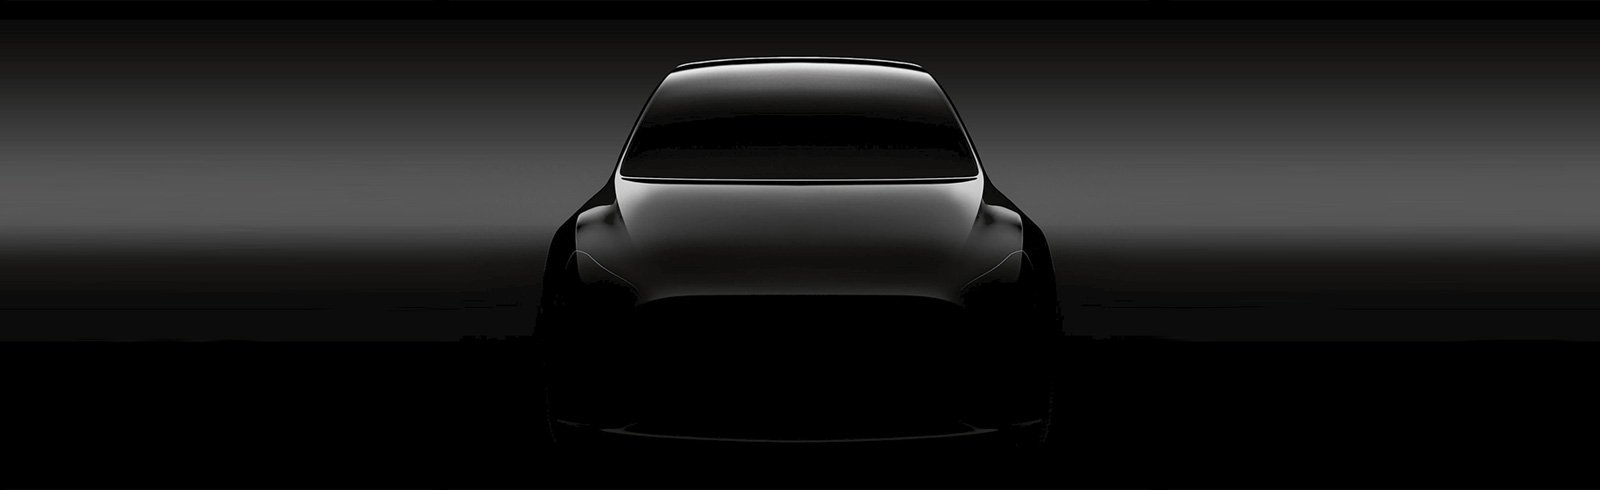 Tesla Model Y will purportedly be unveiled in China at the 2019 Shanghai Auto Show